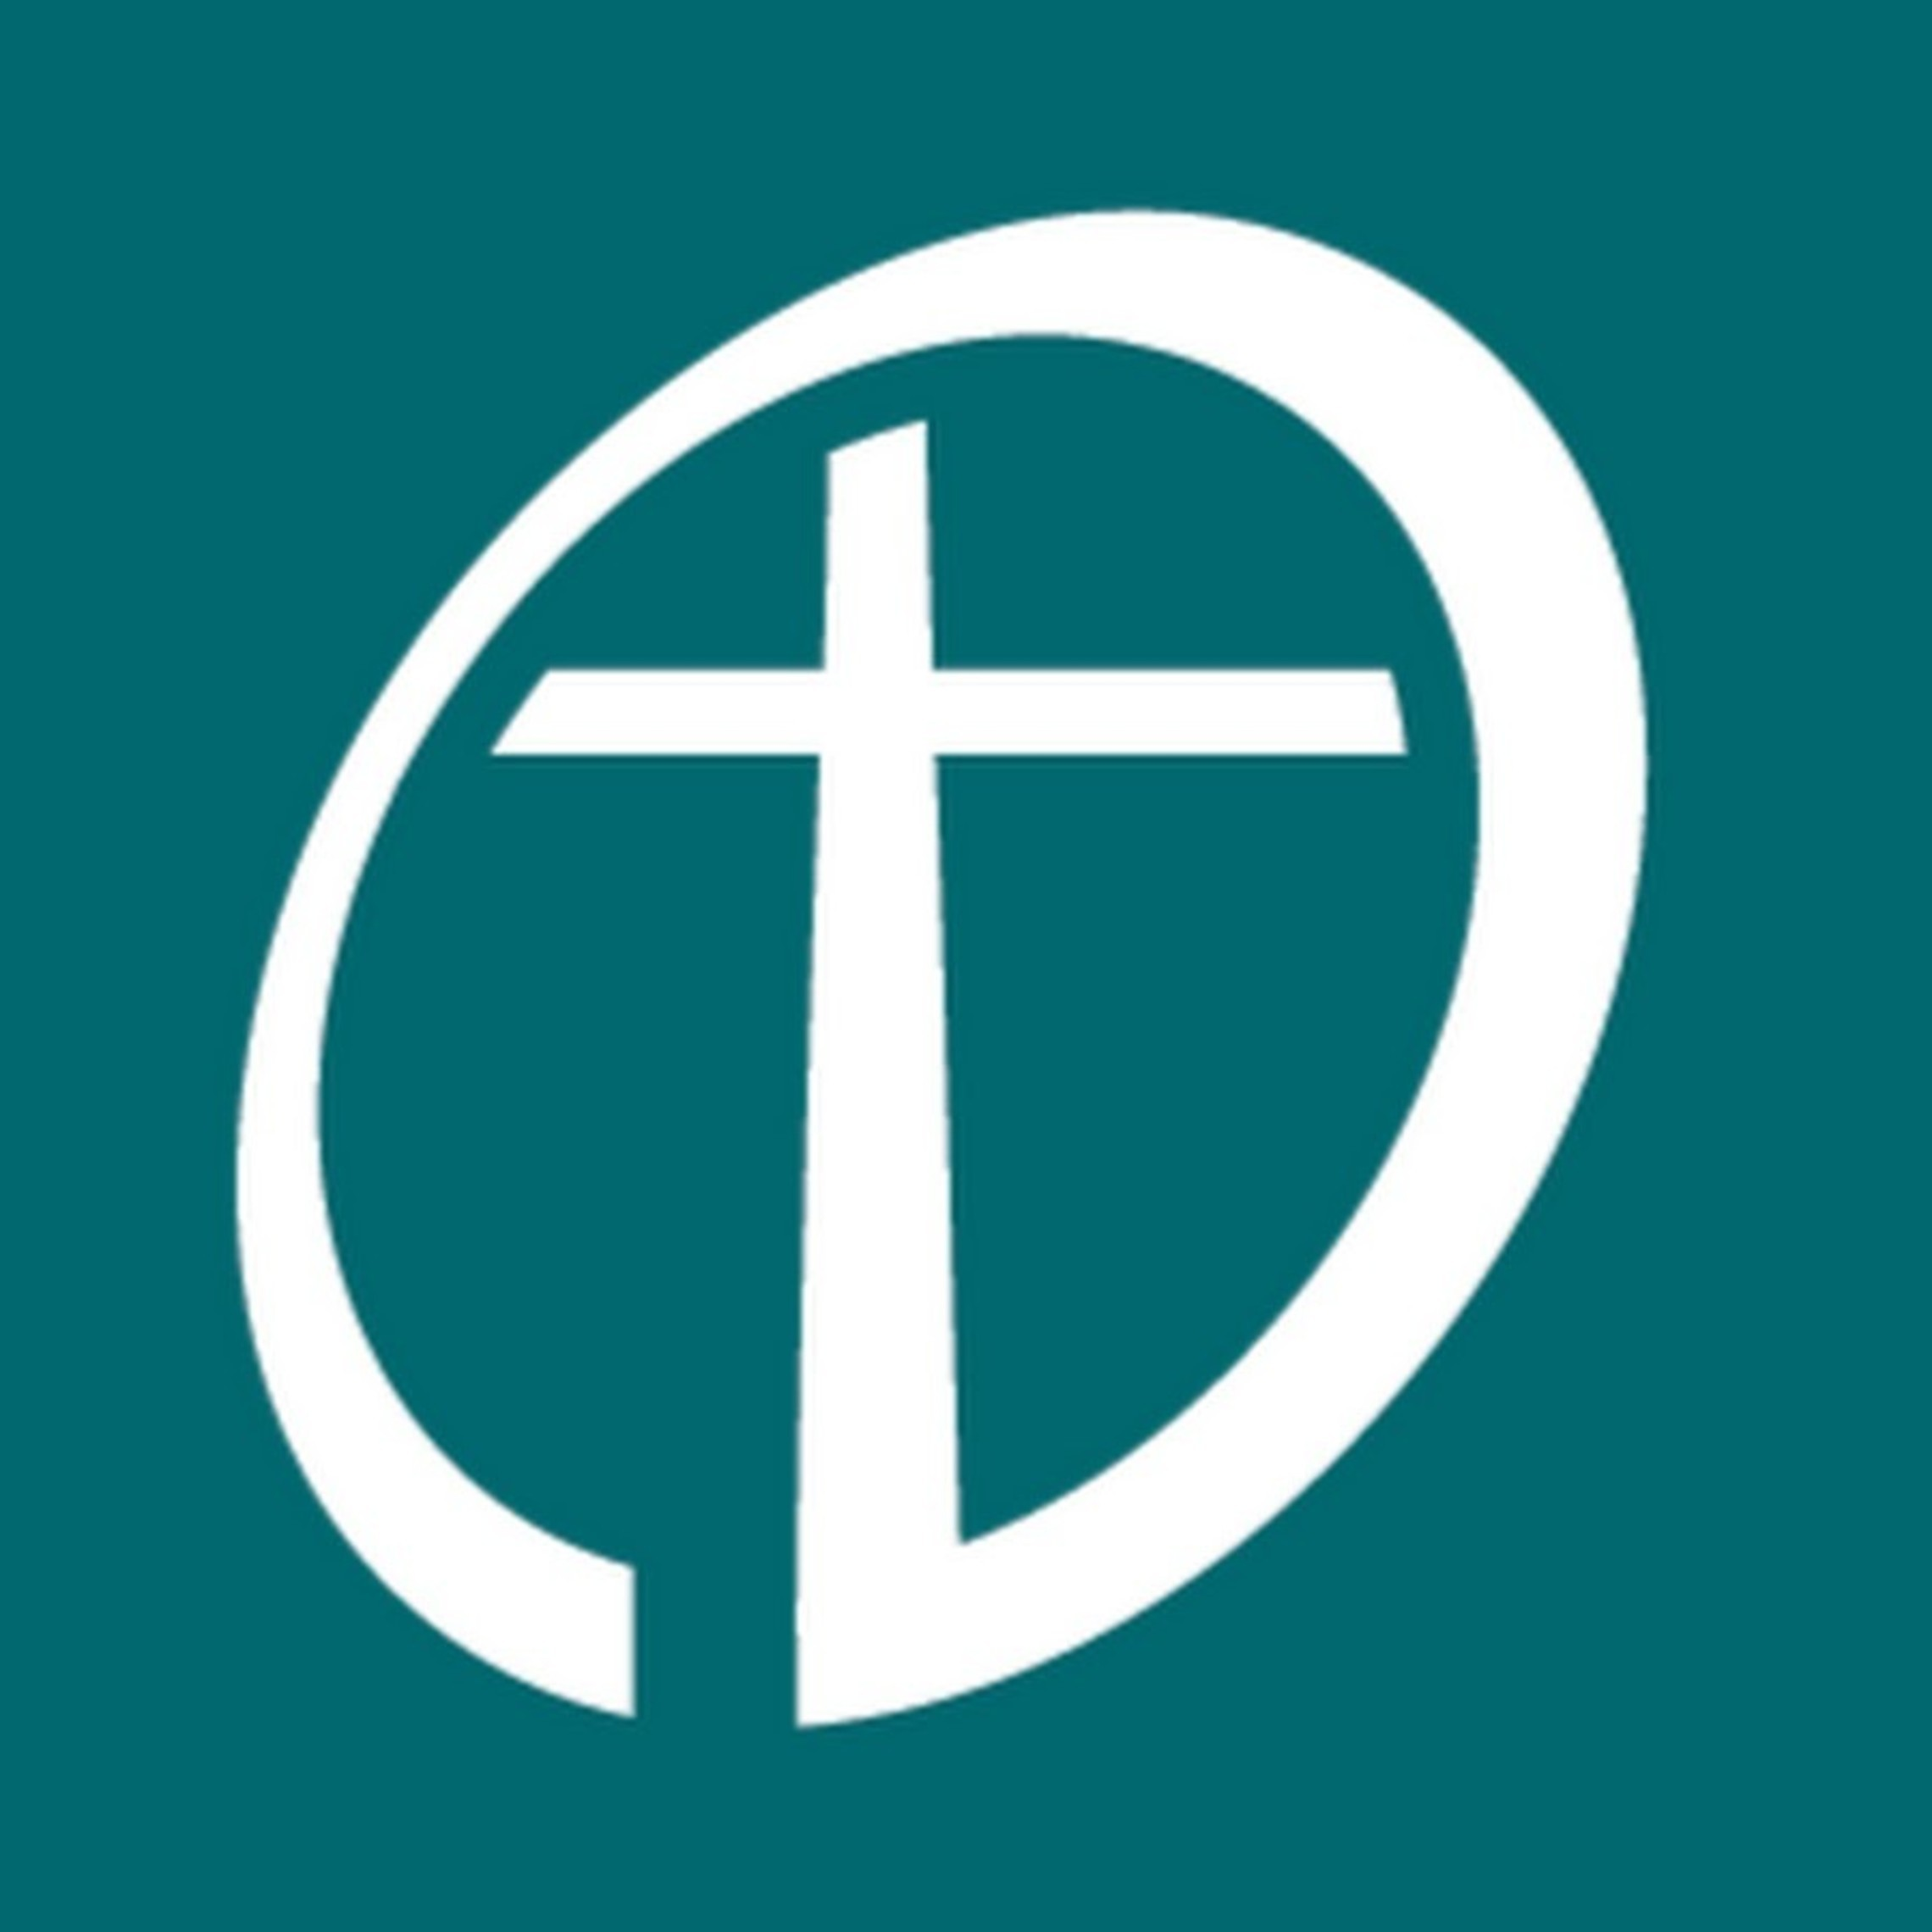 Diocese Of Stockton Logo